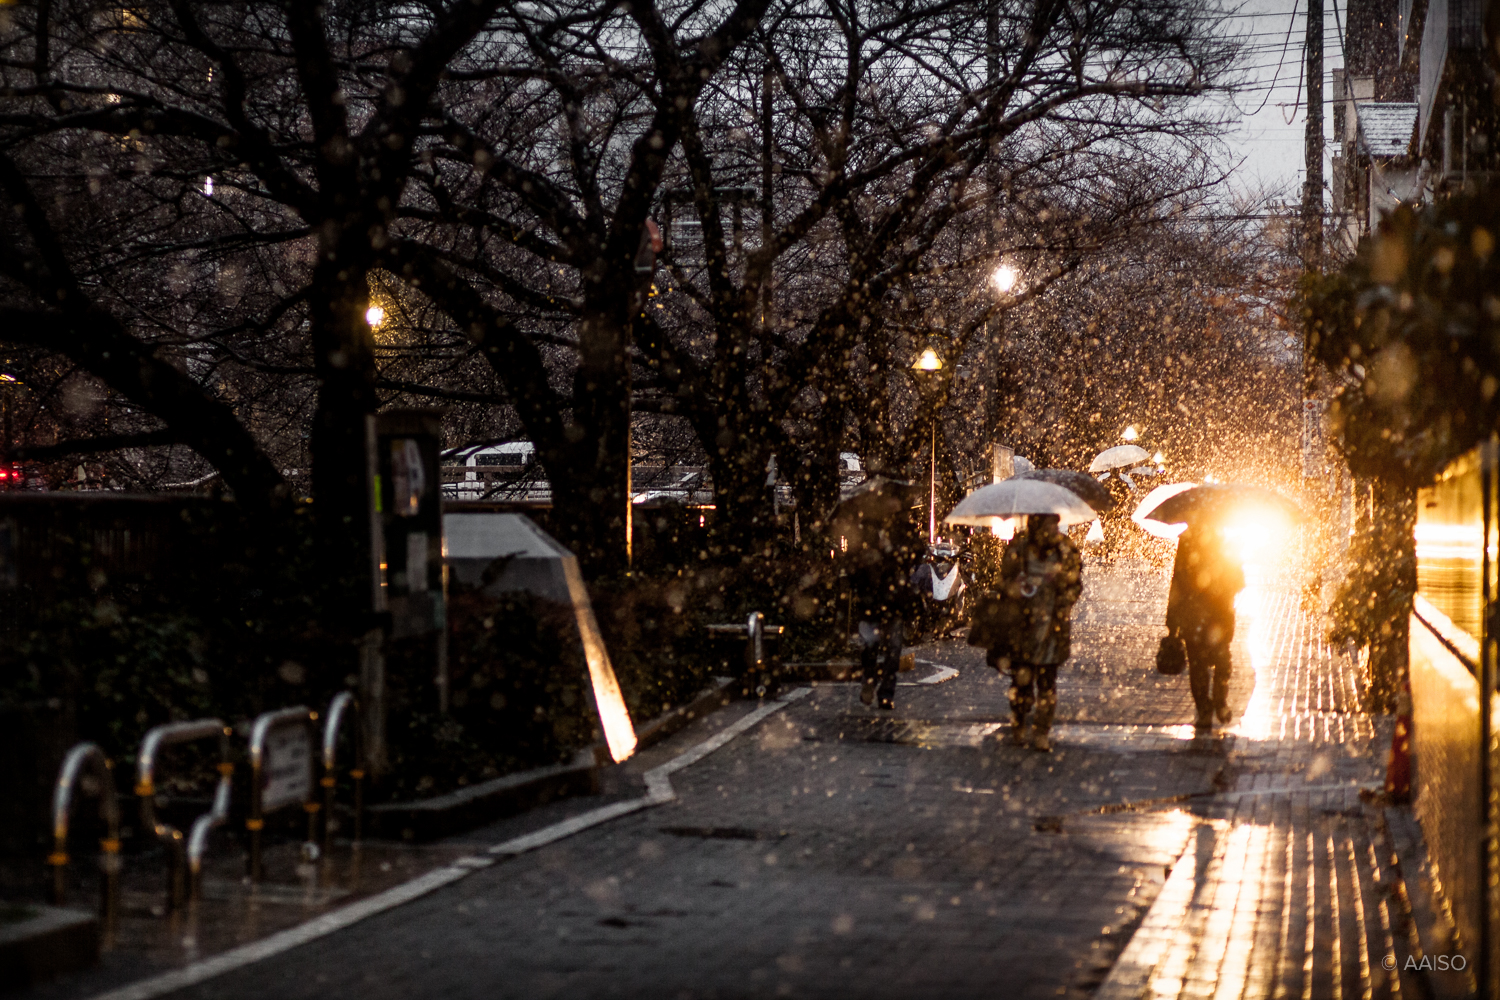 Pedestrians in the snow, along the Meguro River